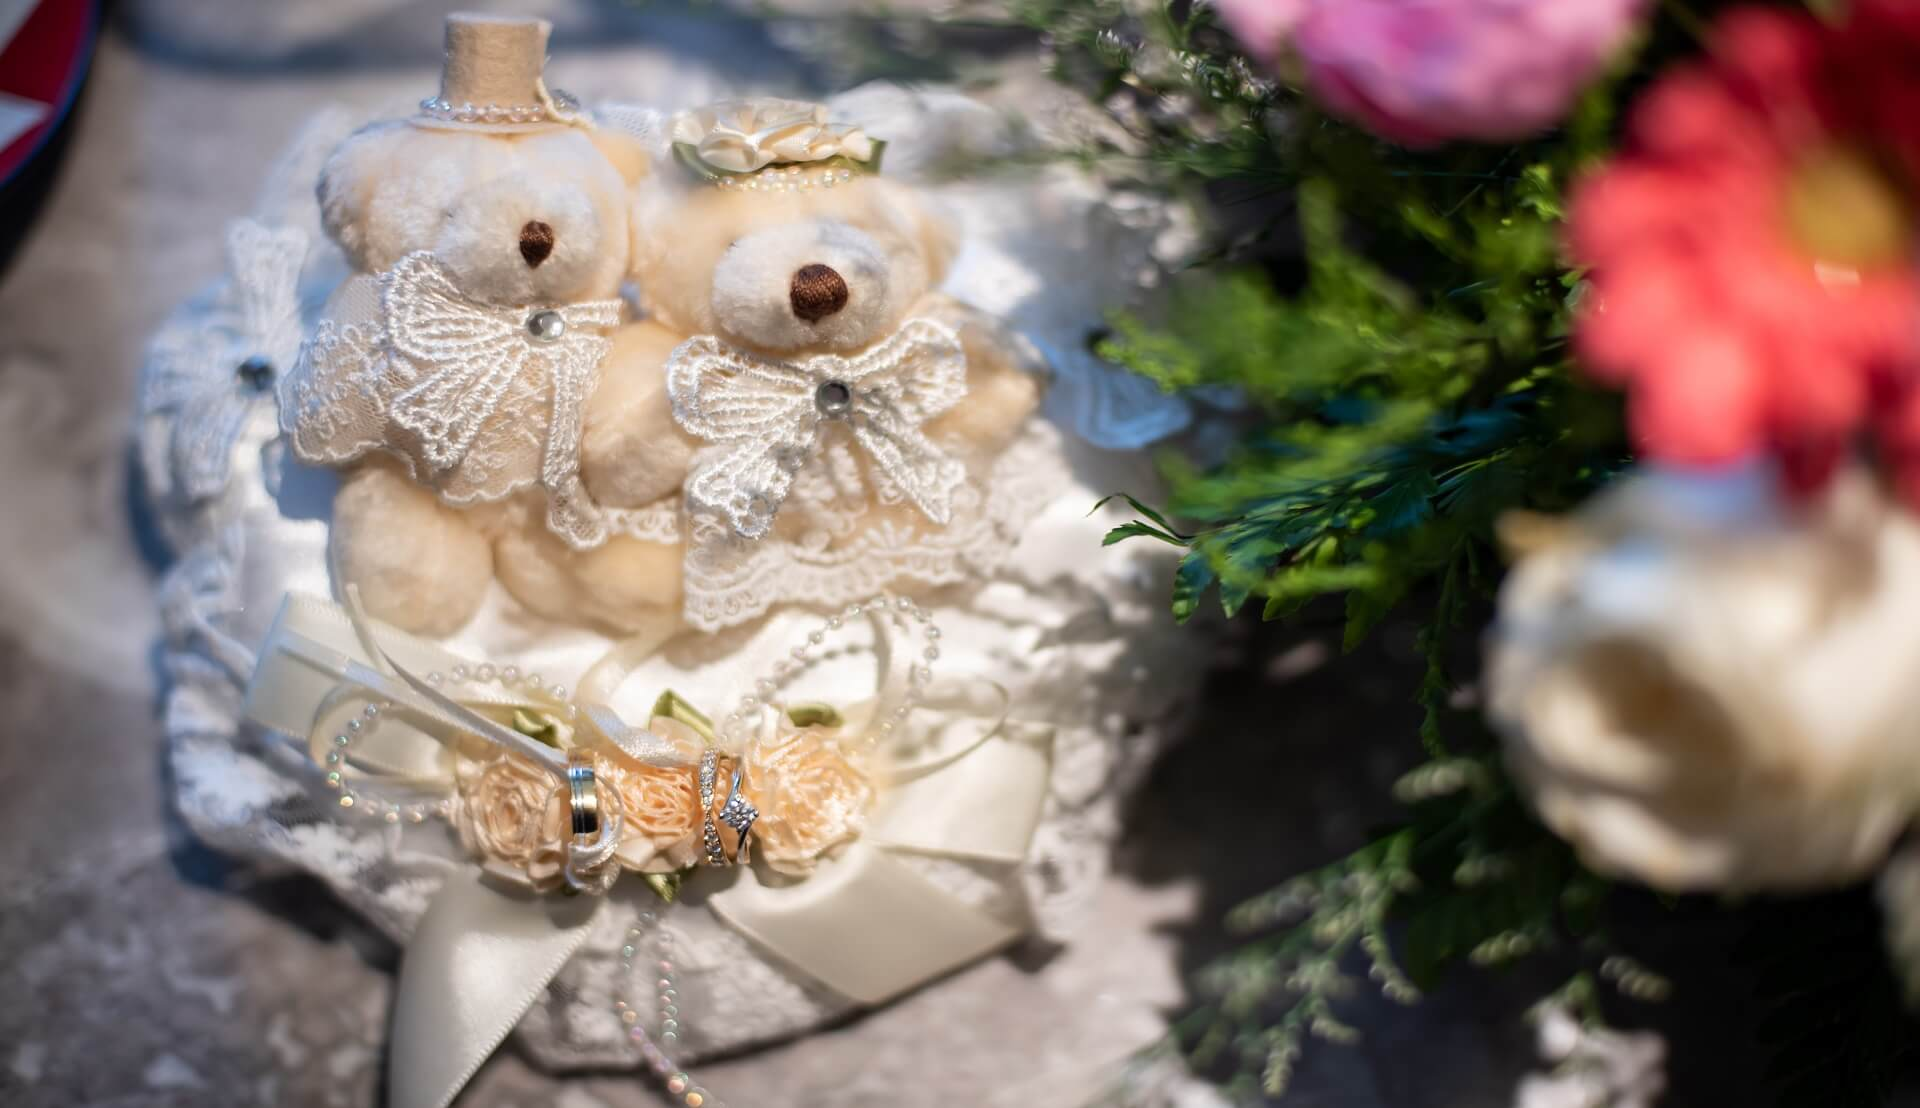 Sugar & Spice Events - Wedding Couple Teddy Bear